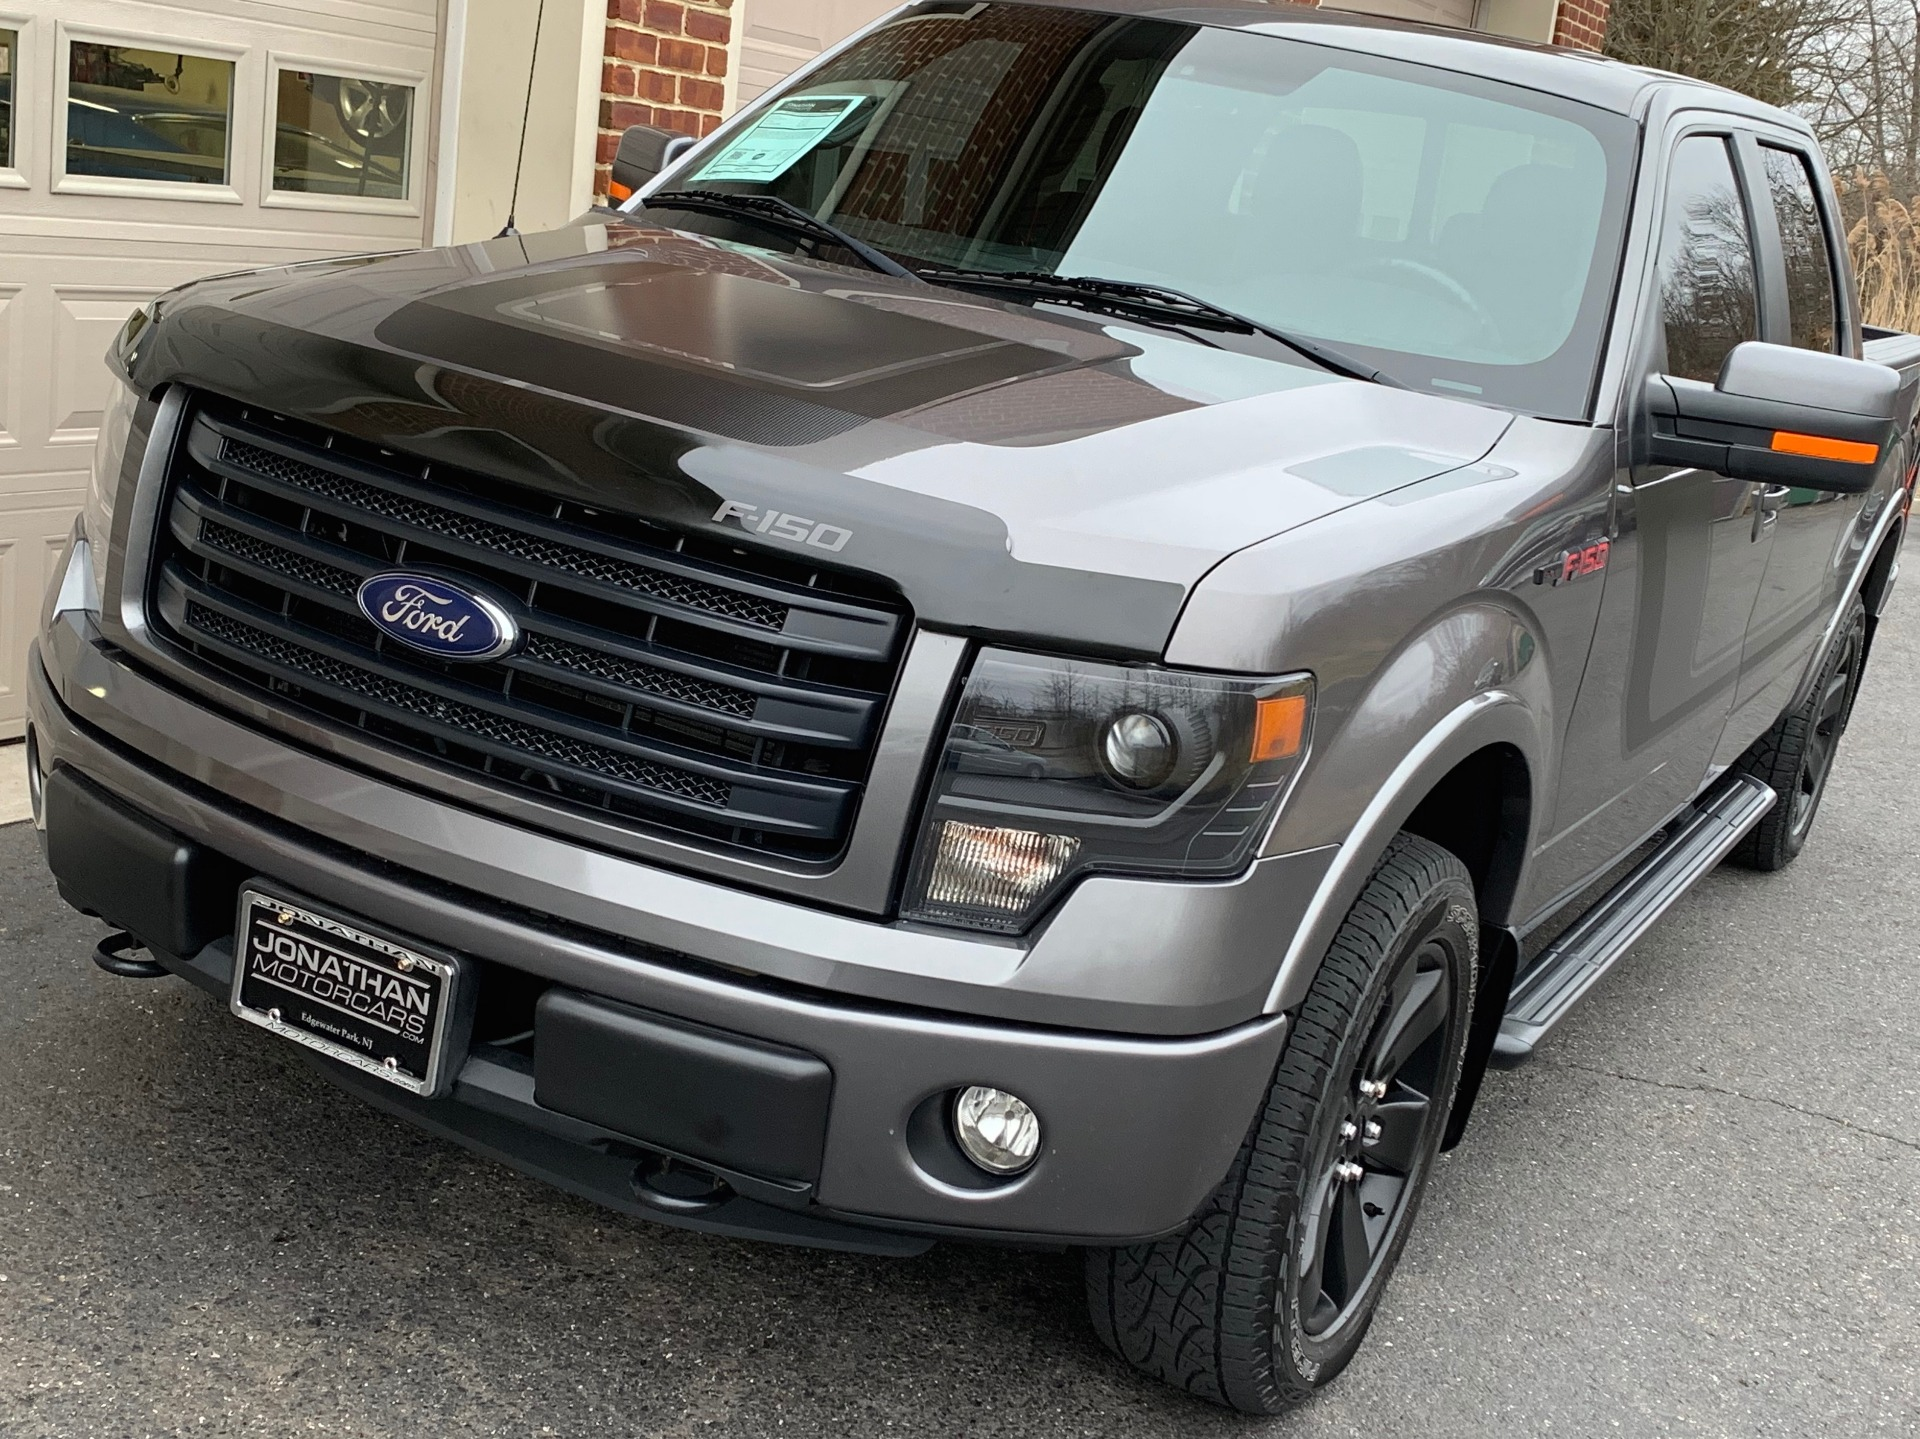 2014 Ford F 150 Fx4 Appearance Package Stock C44611 For Sale Near Edgewater Park Nj Nj Ford Dealer